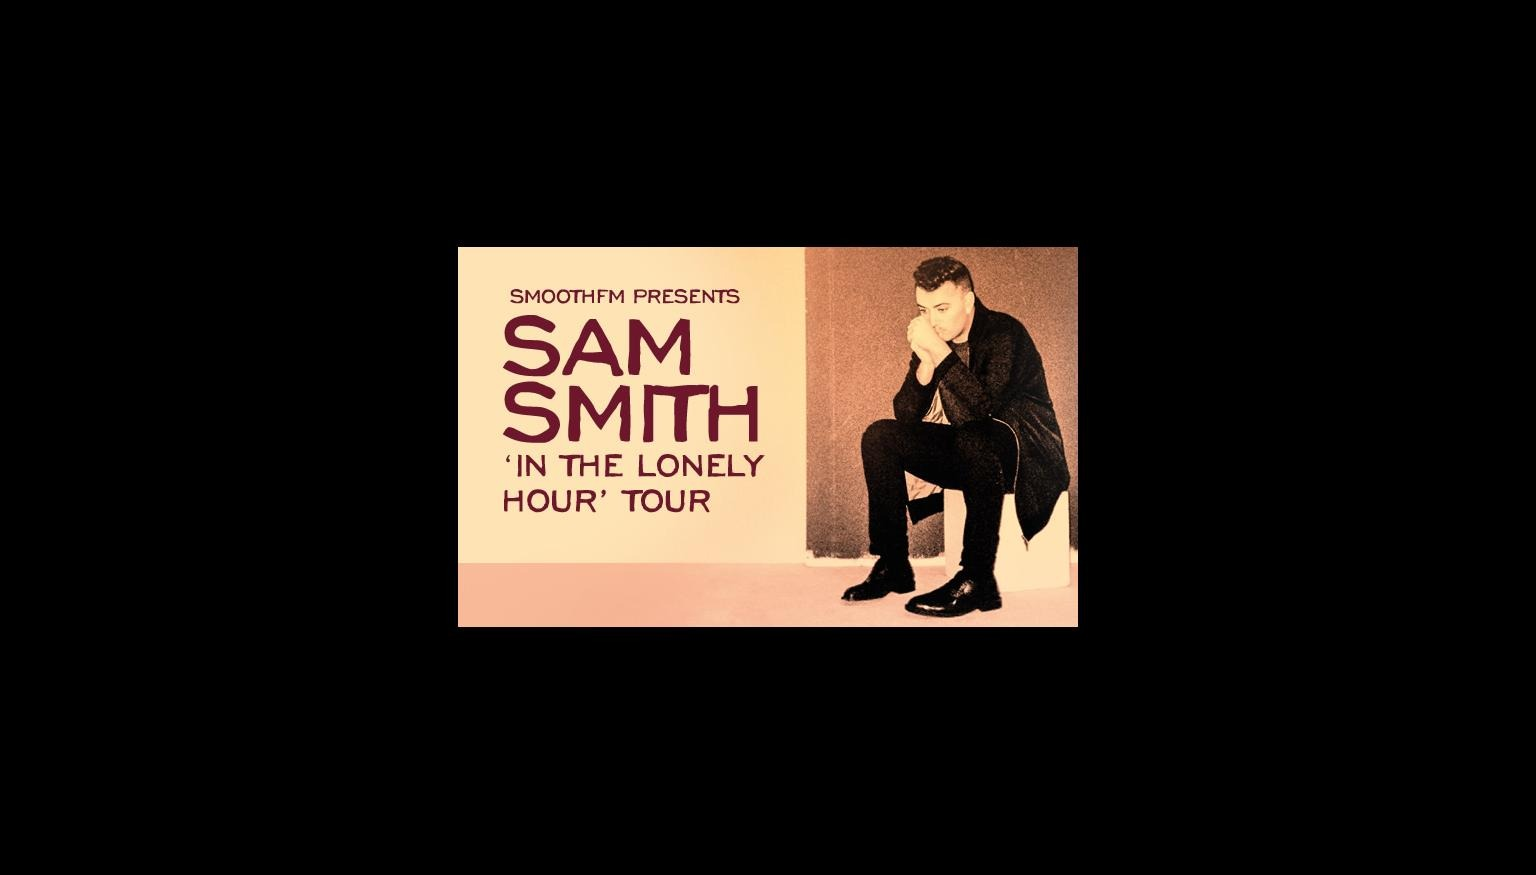 Sam smith tour dates in Sydney